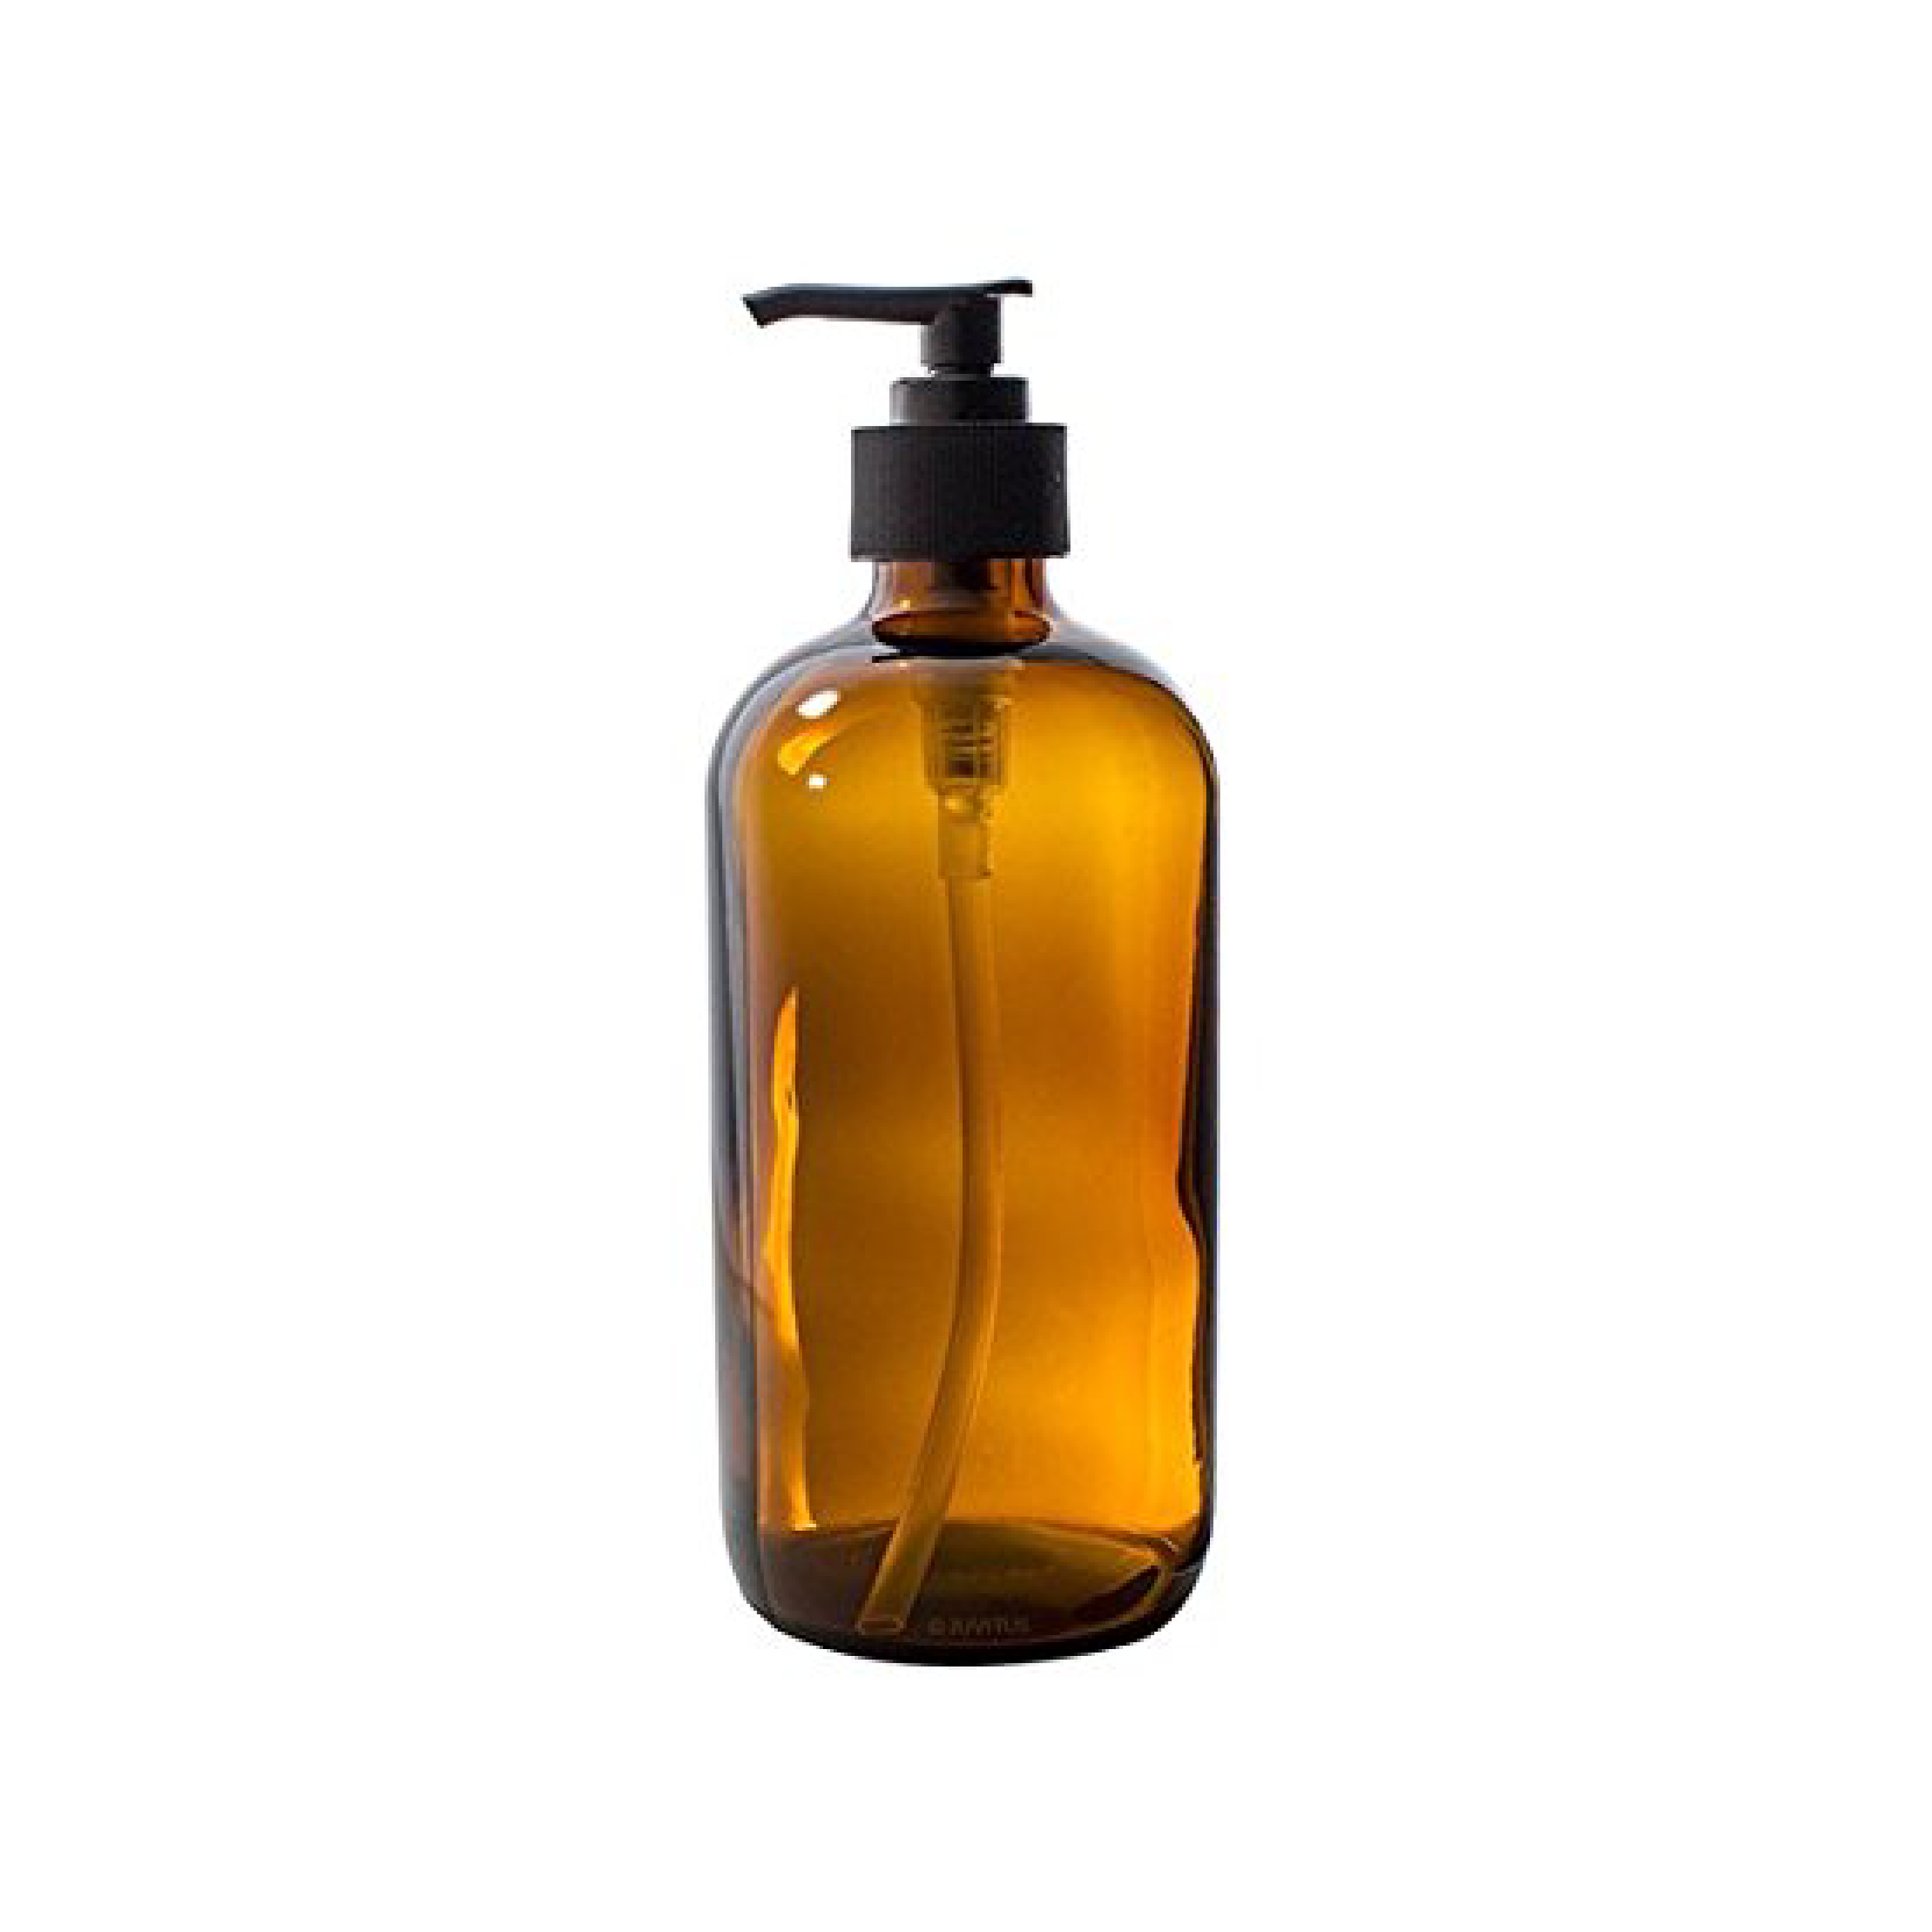 I use this Glass Pump Bottle at the kitchen sink for my Castile Soap + Water Mixture to wash my hands and hand-wash dishes.